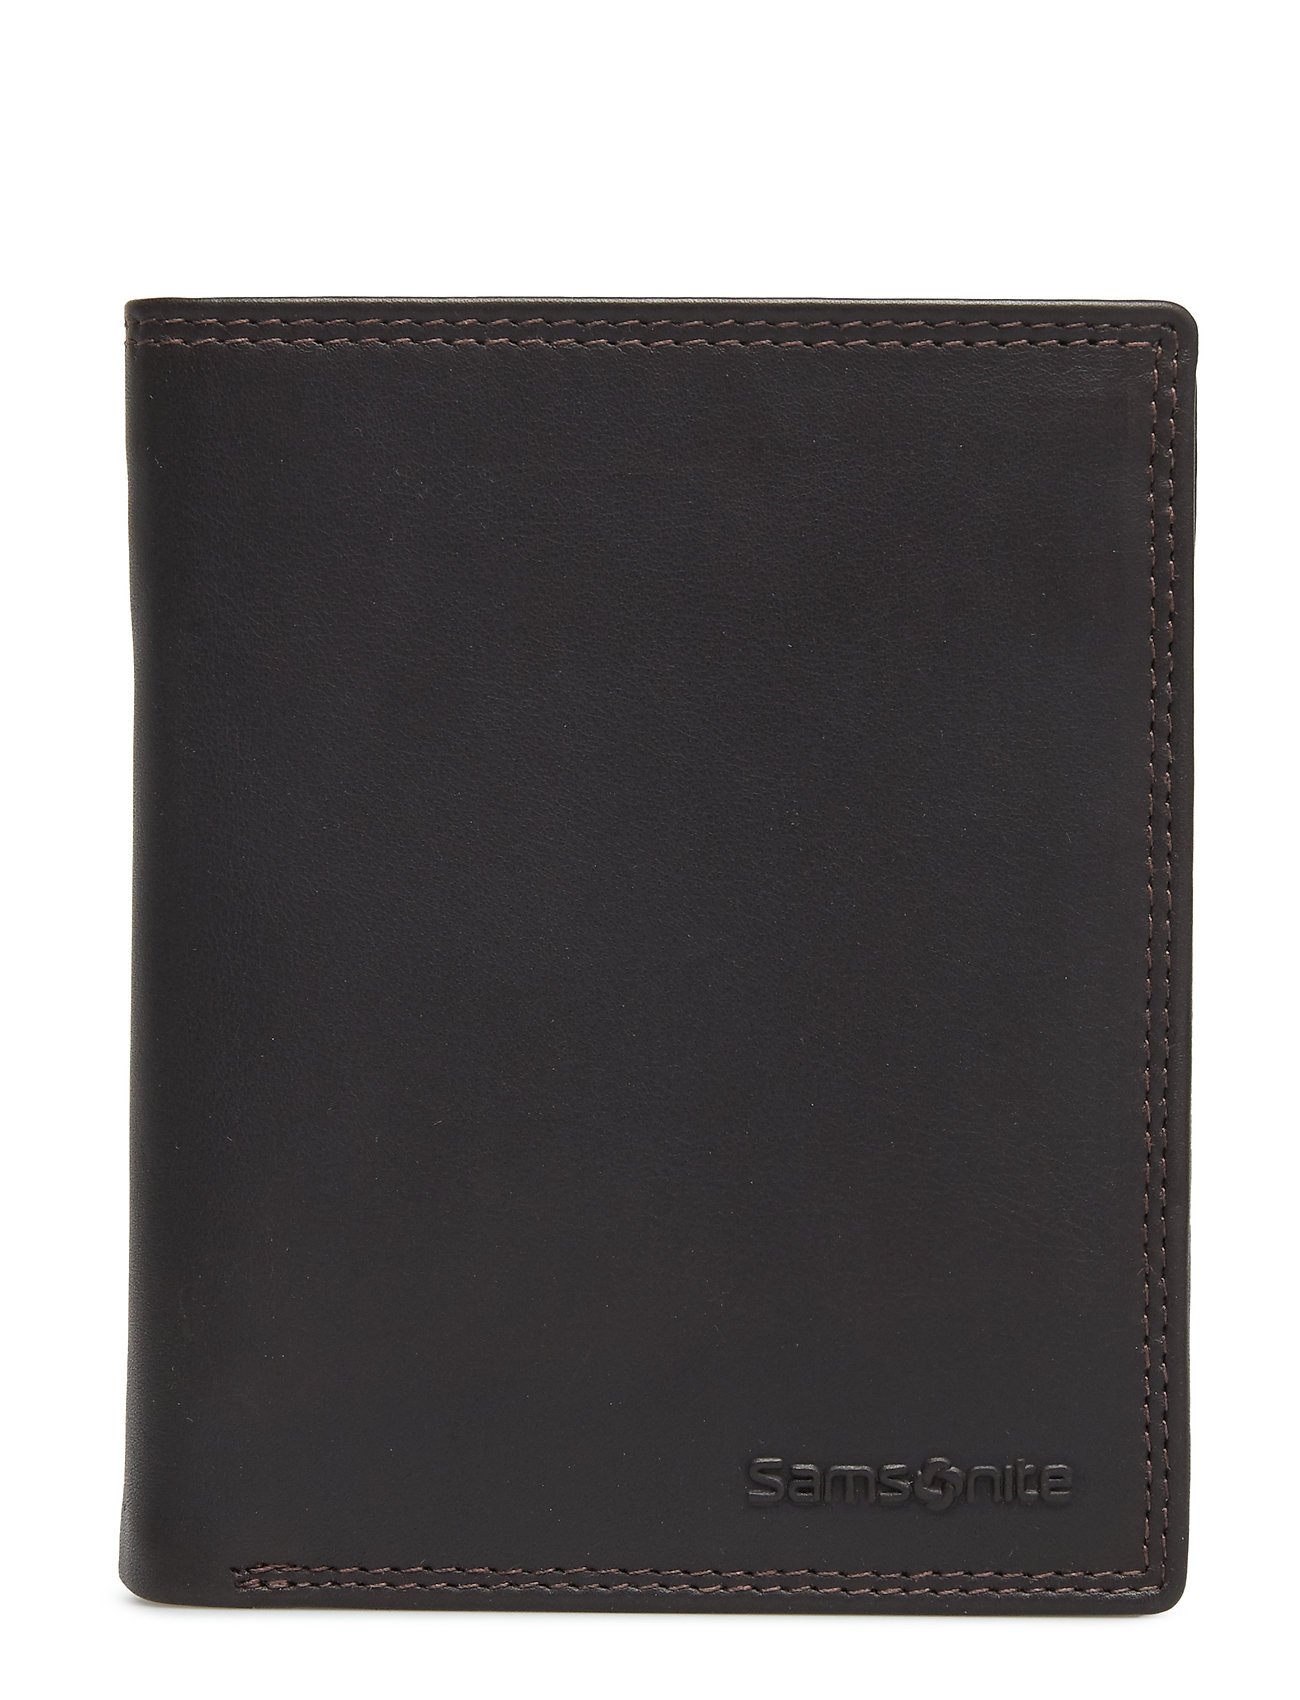 Samsonite Attack SLG Wallet 8Cc